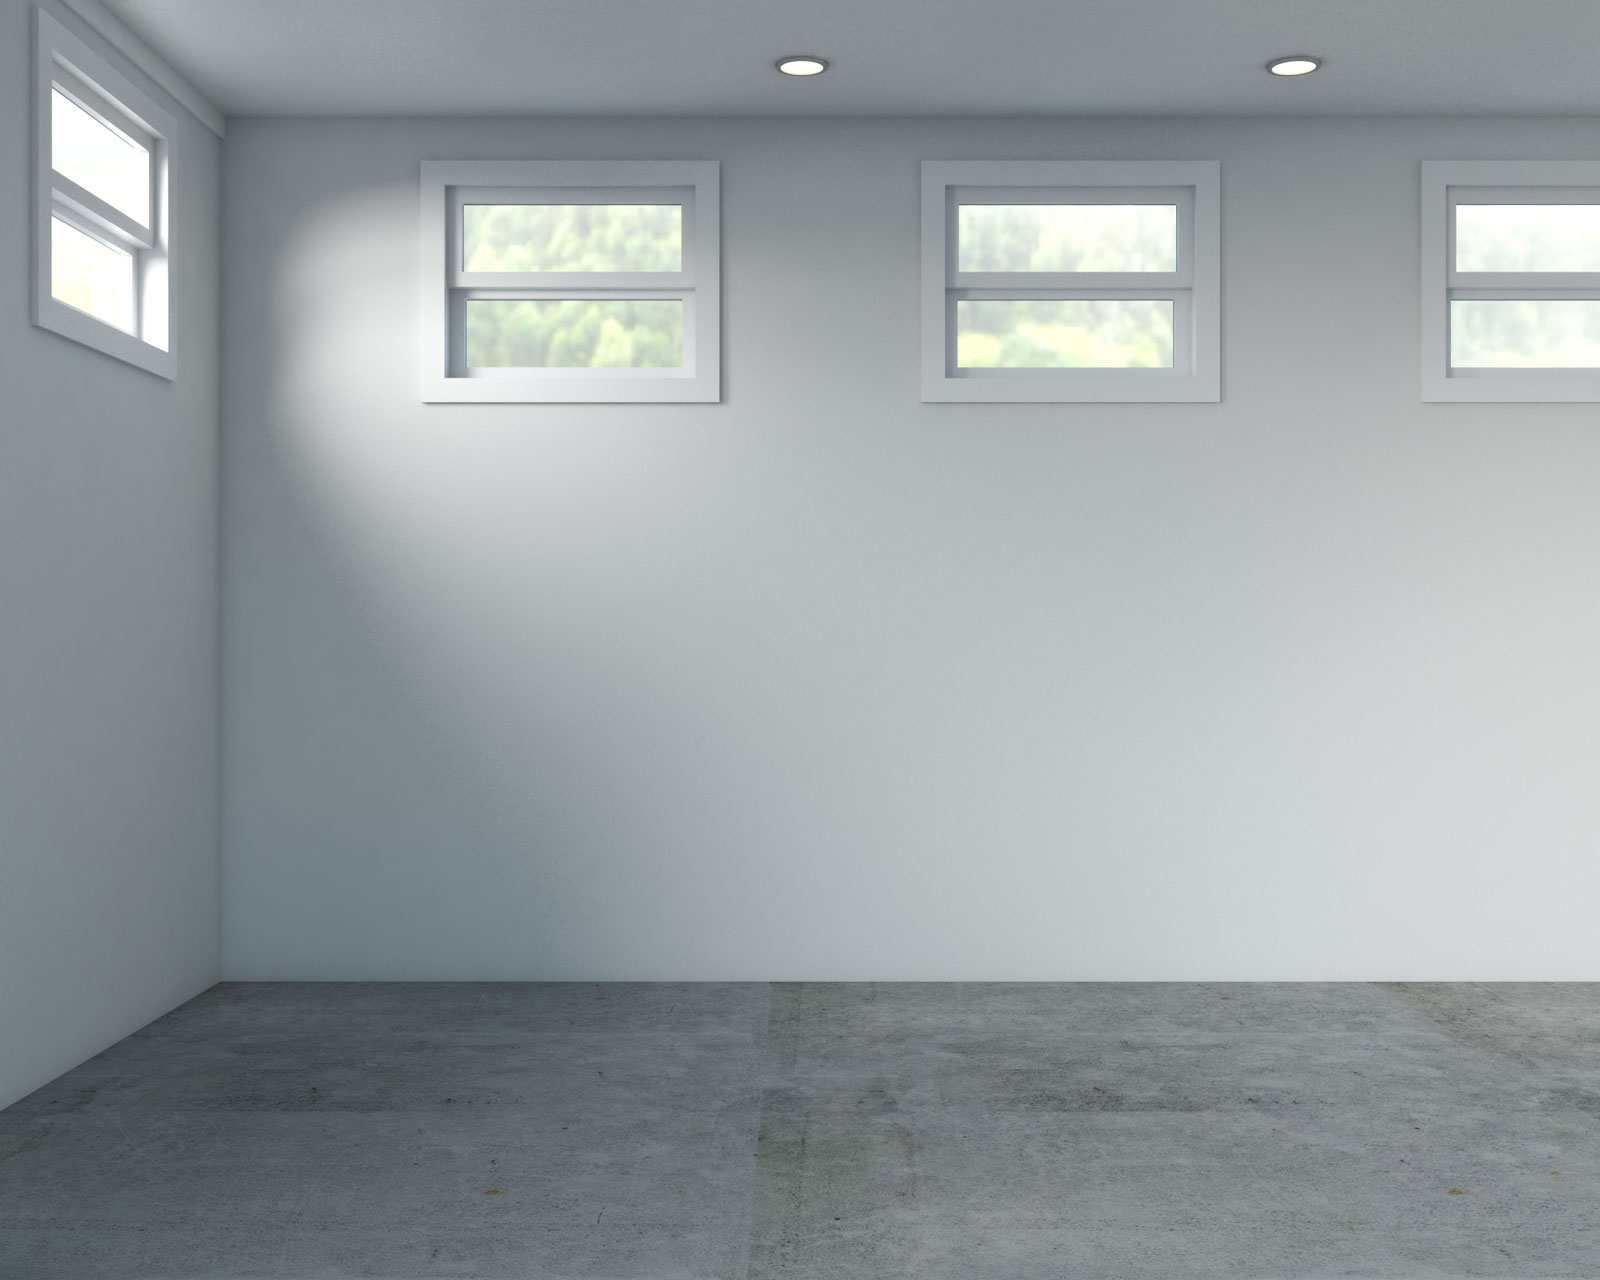 Basement with light gray walls and concrete flooring